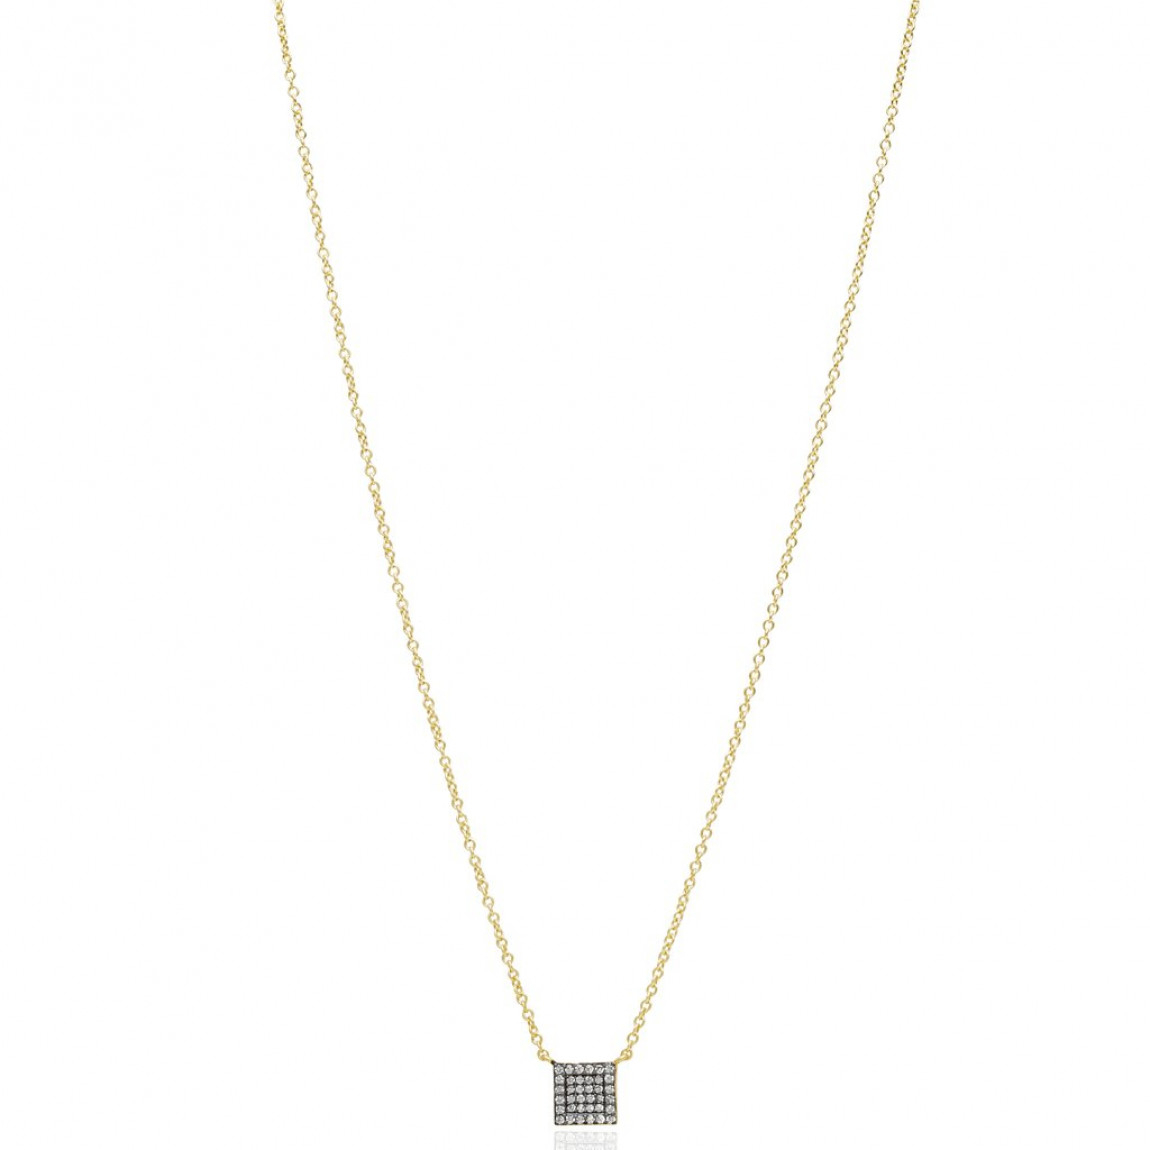 Freida Rothman Pavé Square Pendant Necklace, 14K Yellow Gold And Black Sterling Silver, Cz Within Most Recent Sparkling Square Halo Pendant Necklaces (Gallery 8 of 25)